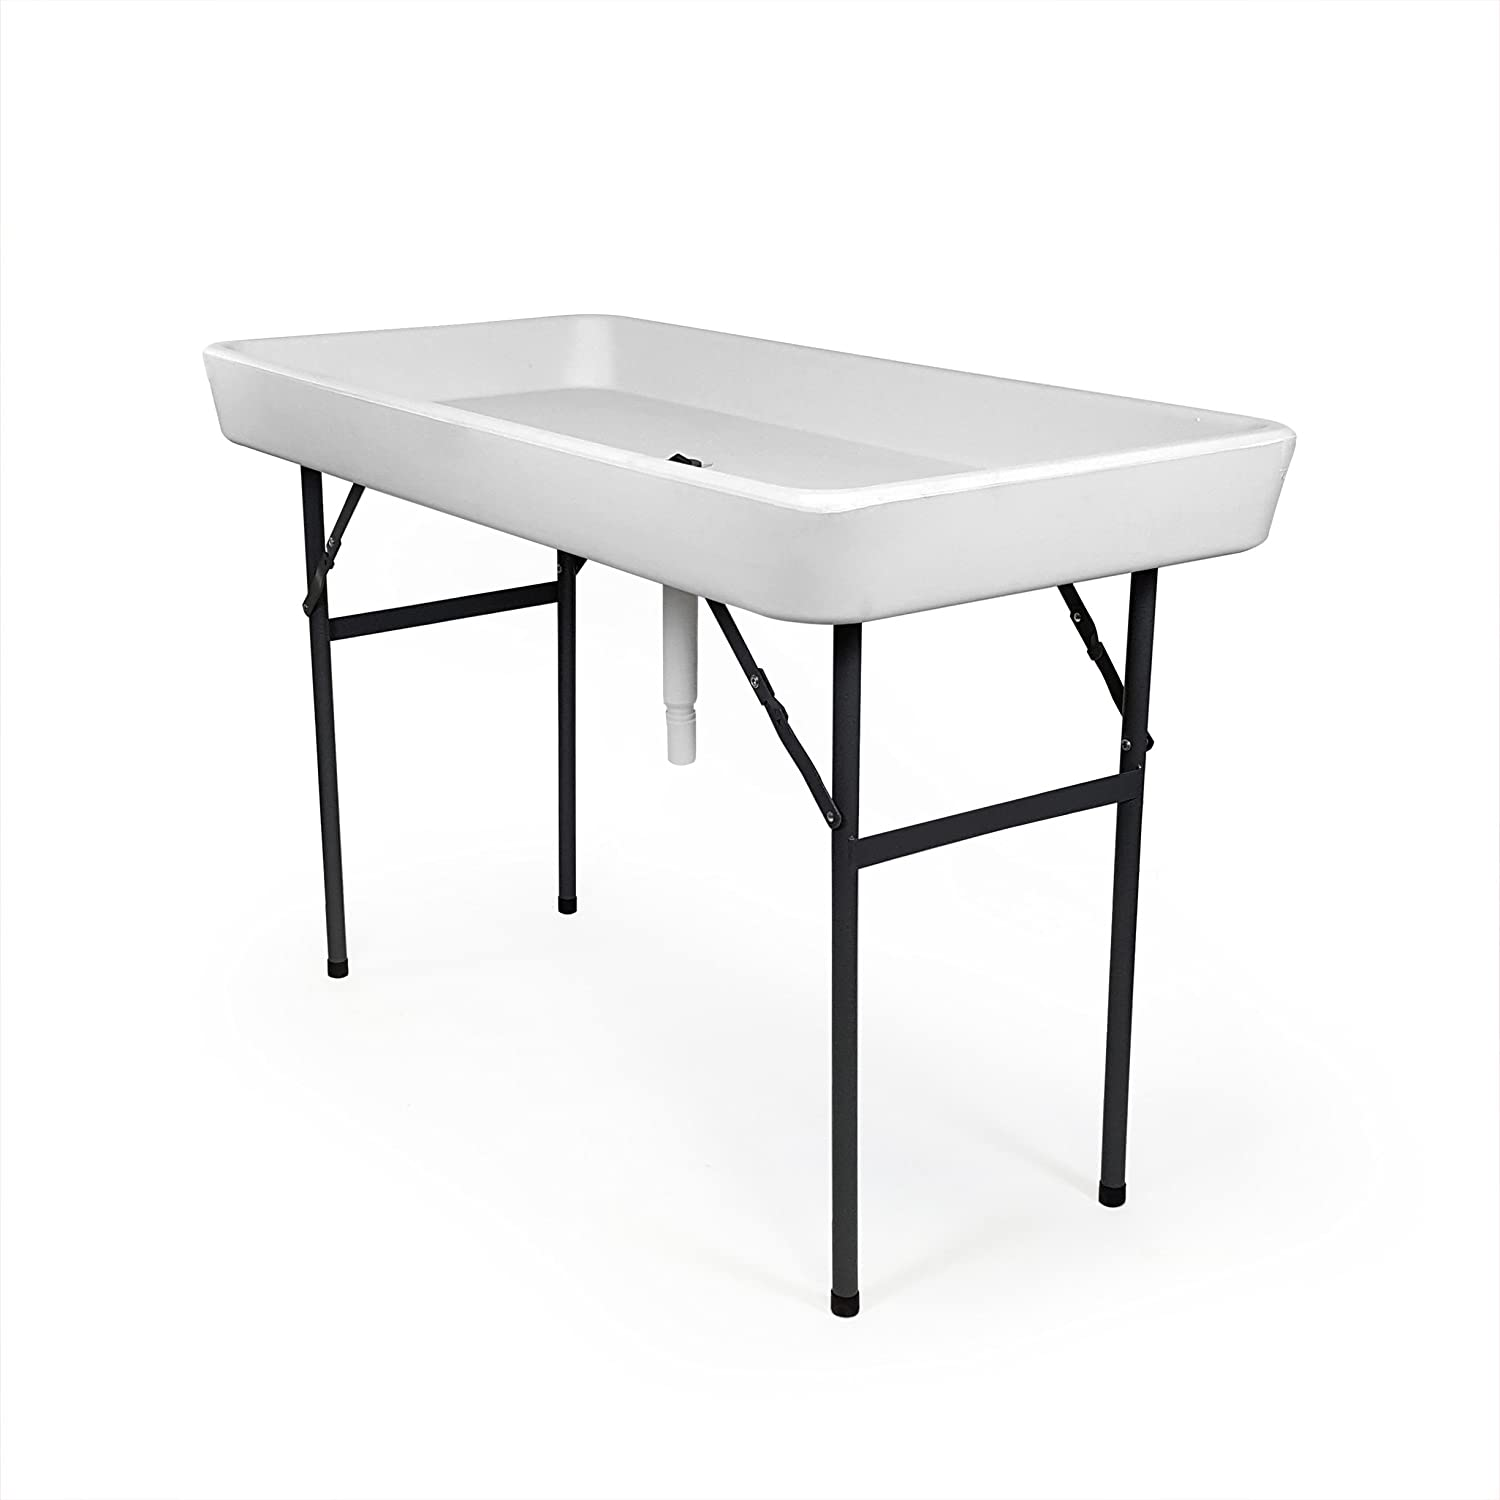 4 Foot Cooler Ice Table Party Ice Folding Table with Matching Skirt – White